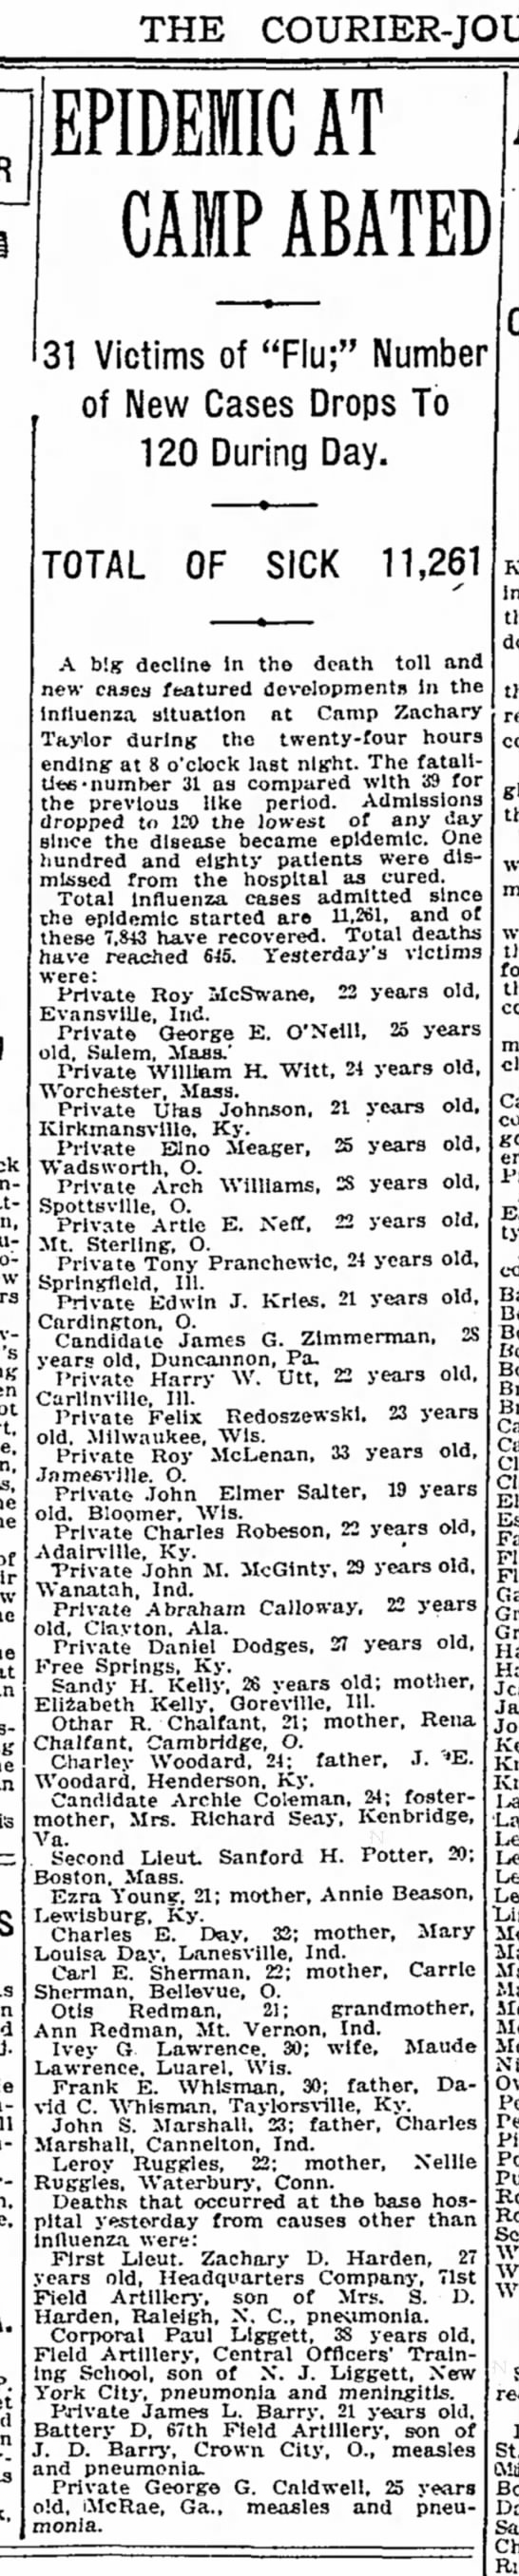 Influenza 1918 - THE COURIER-JOURNAL, COURIER-JOURNAL, EPIDEMIC...